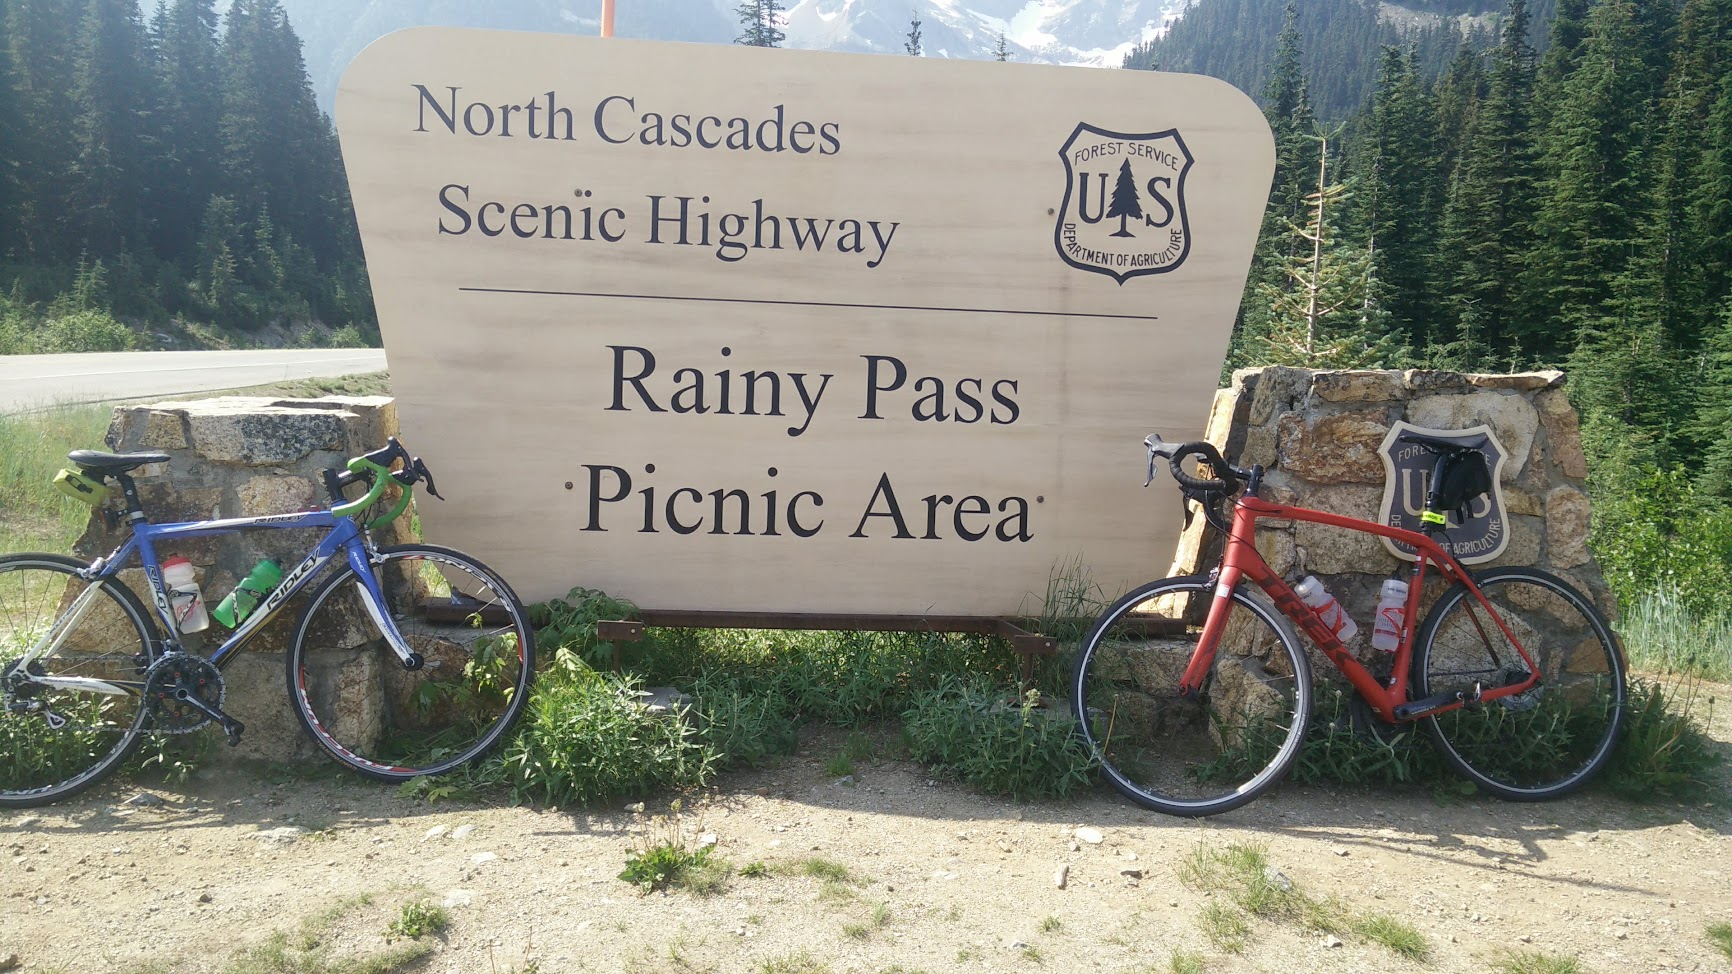 Rainy Pass Lookout area